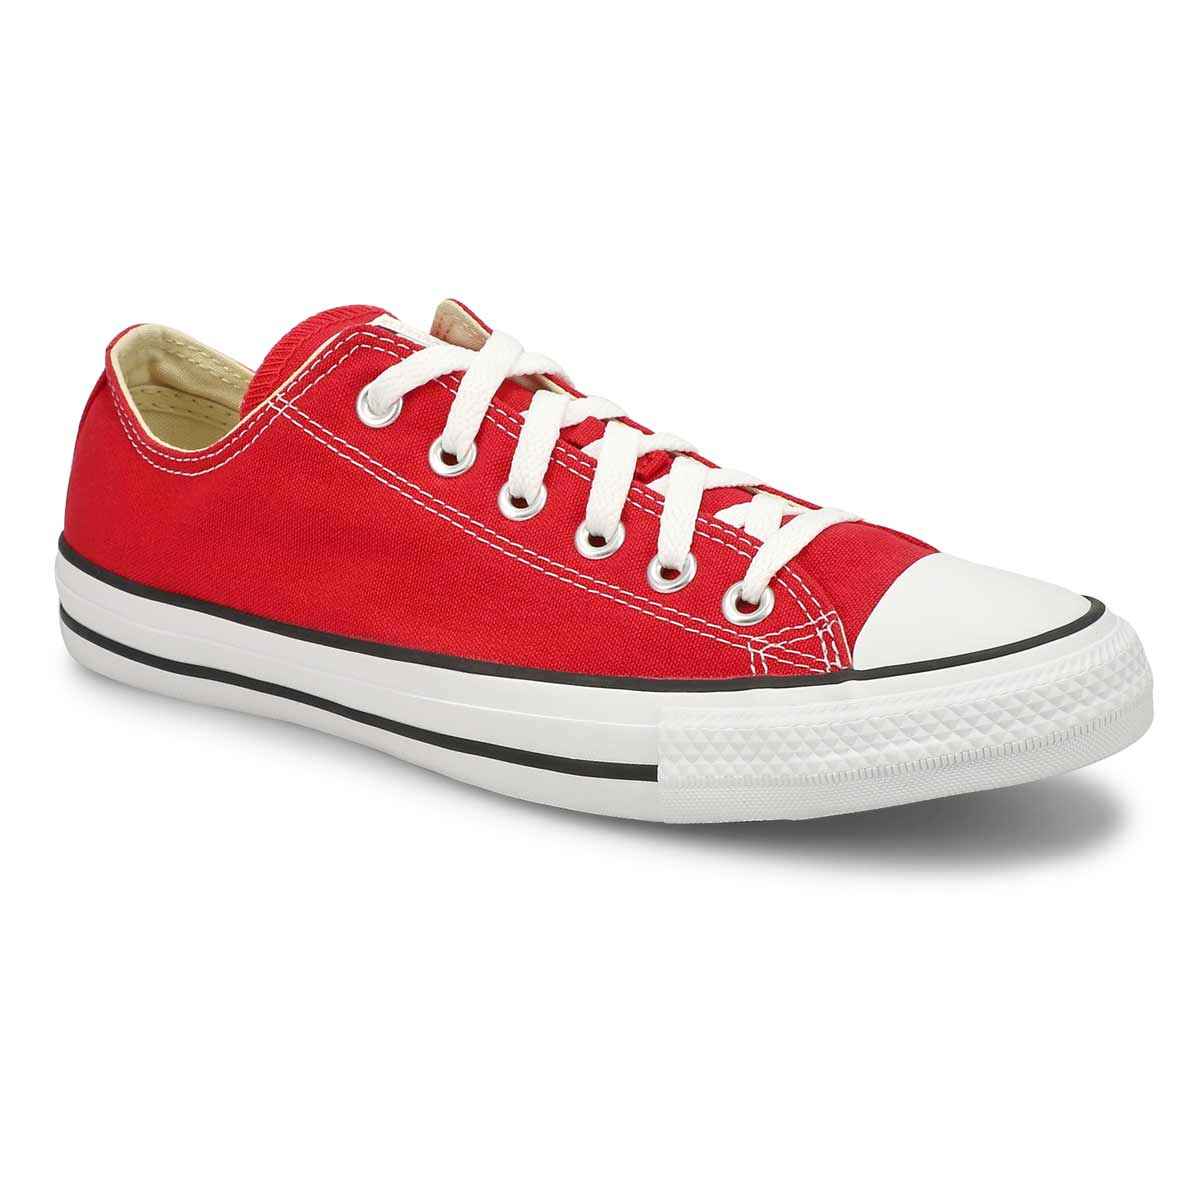 Men's CHUCK TAYLOR CORE OX red canvas sneakers